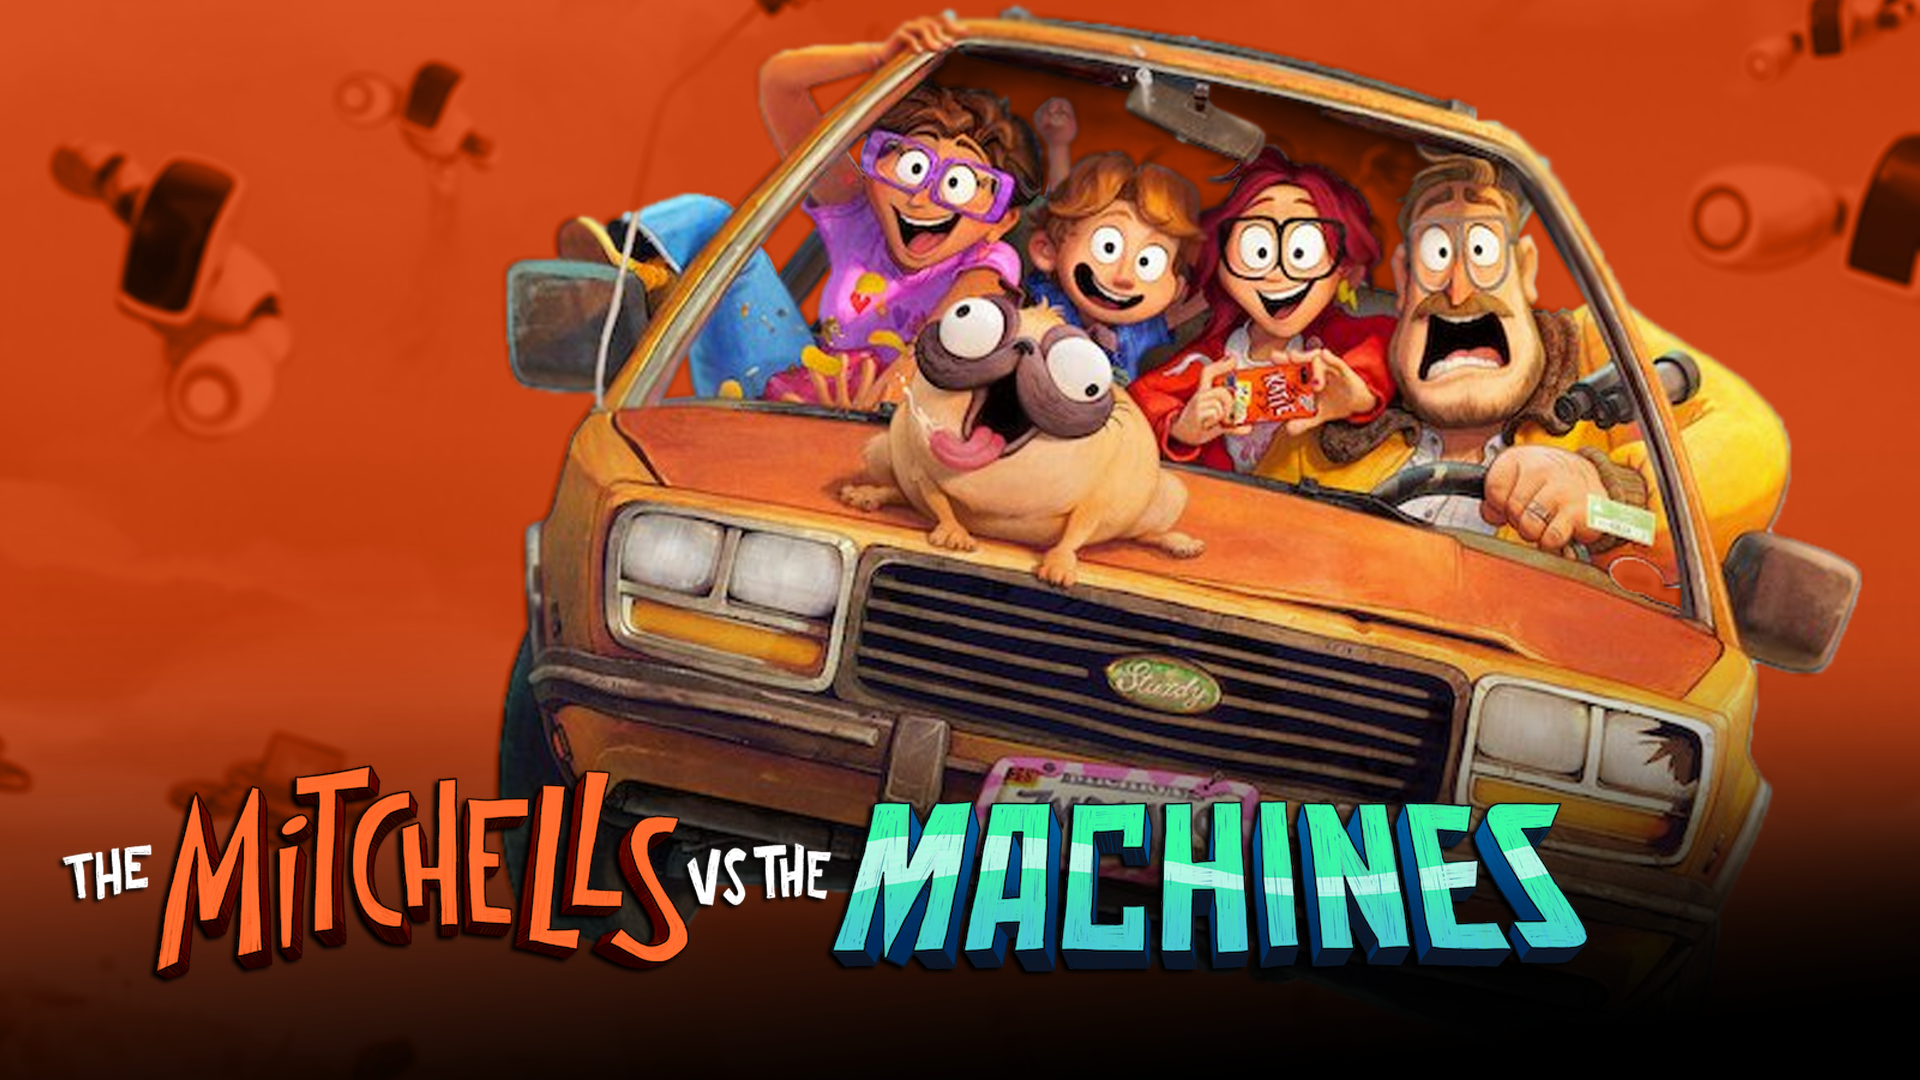 The Mitchells vs The Machines is just downright fun